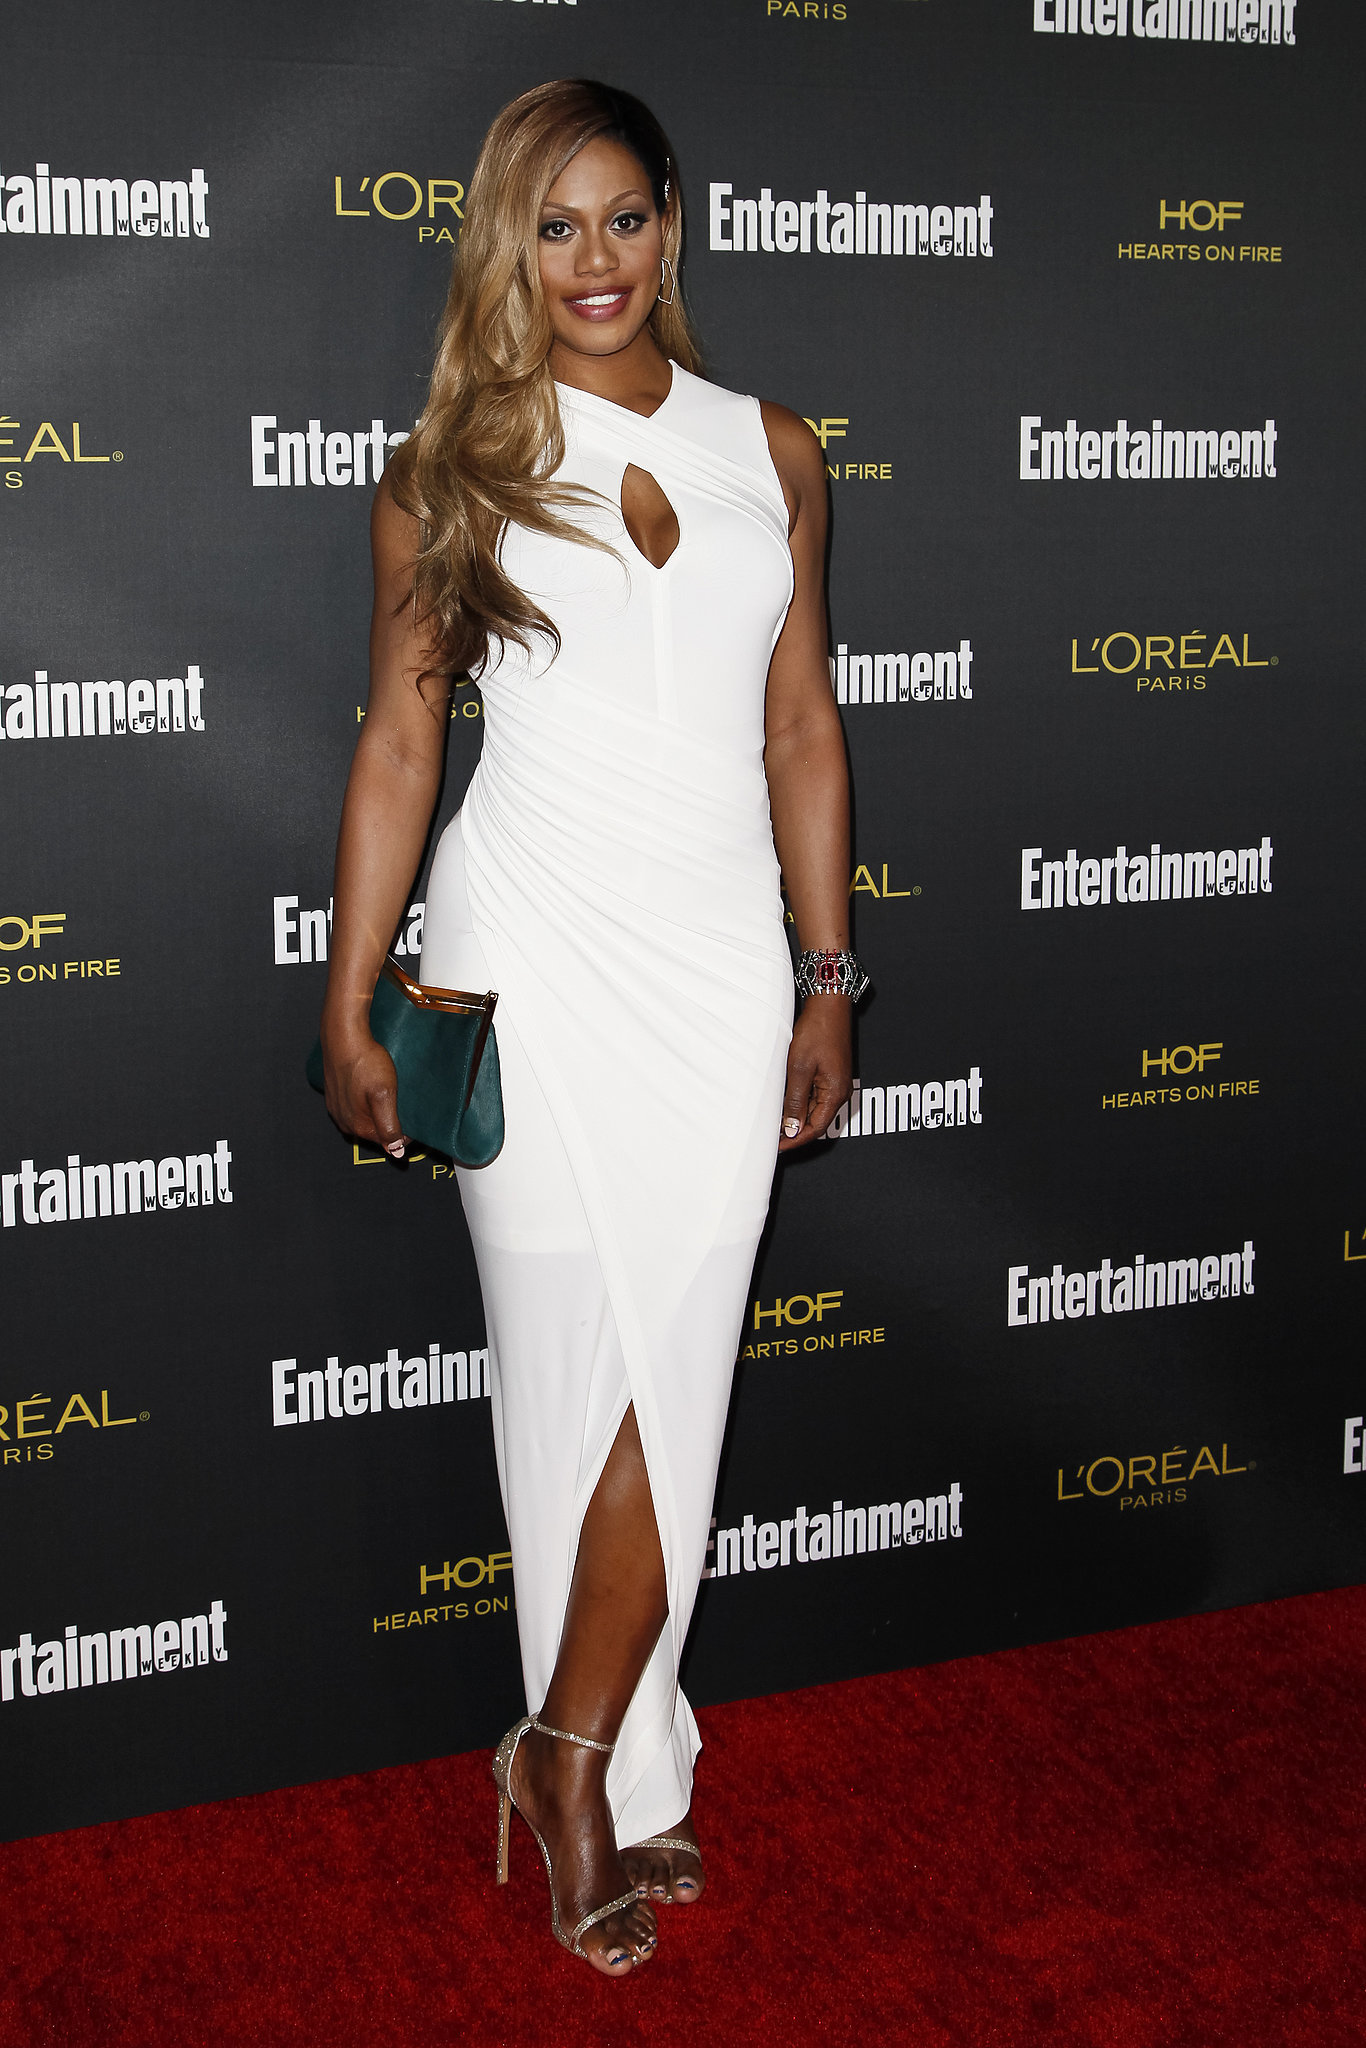 Laverne later changed into white for Entertainment Weekly's bash.